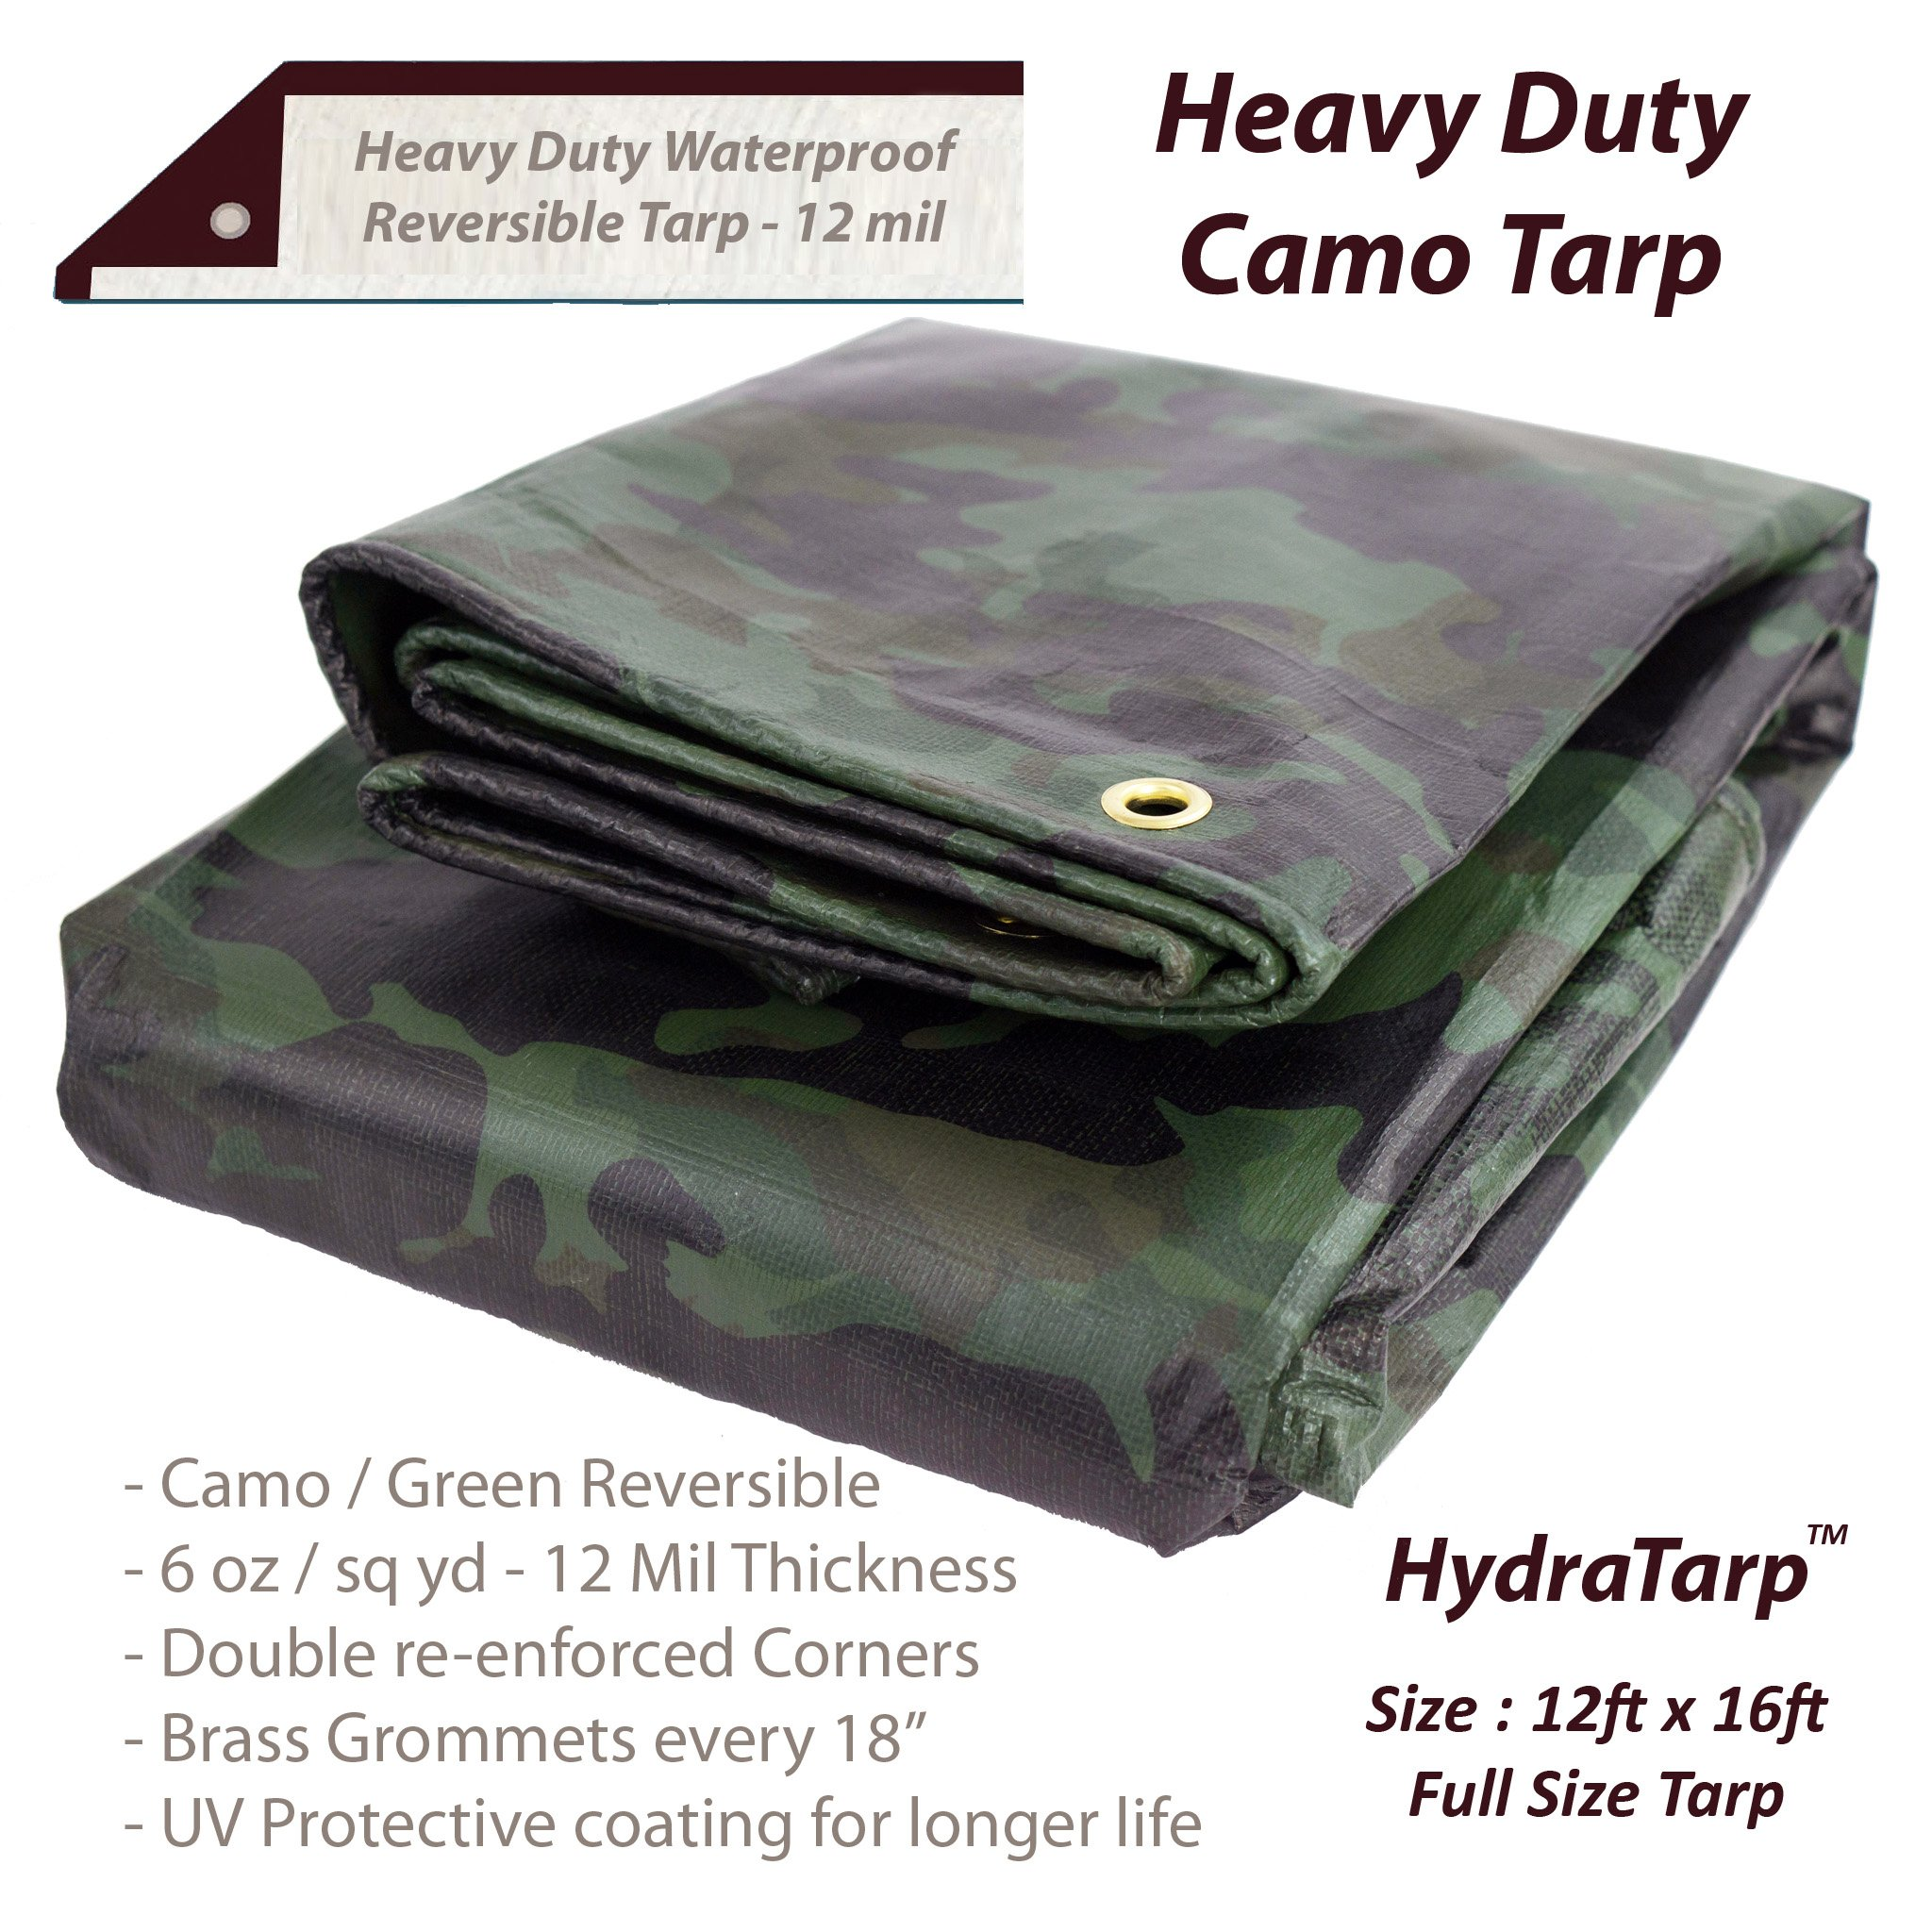 Heavy Duty Waterproof Camo Tarp - Reversible Camouflage/Green Vinyl Tarp -12x16 with UV Protection for Outdoor Camping RV Truck and Trailers by Watershed Innovations